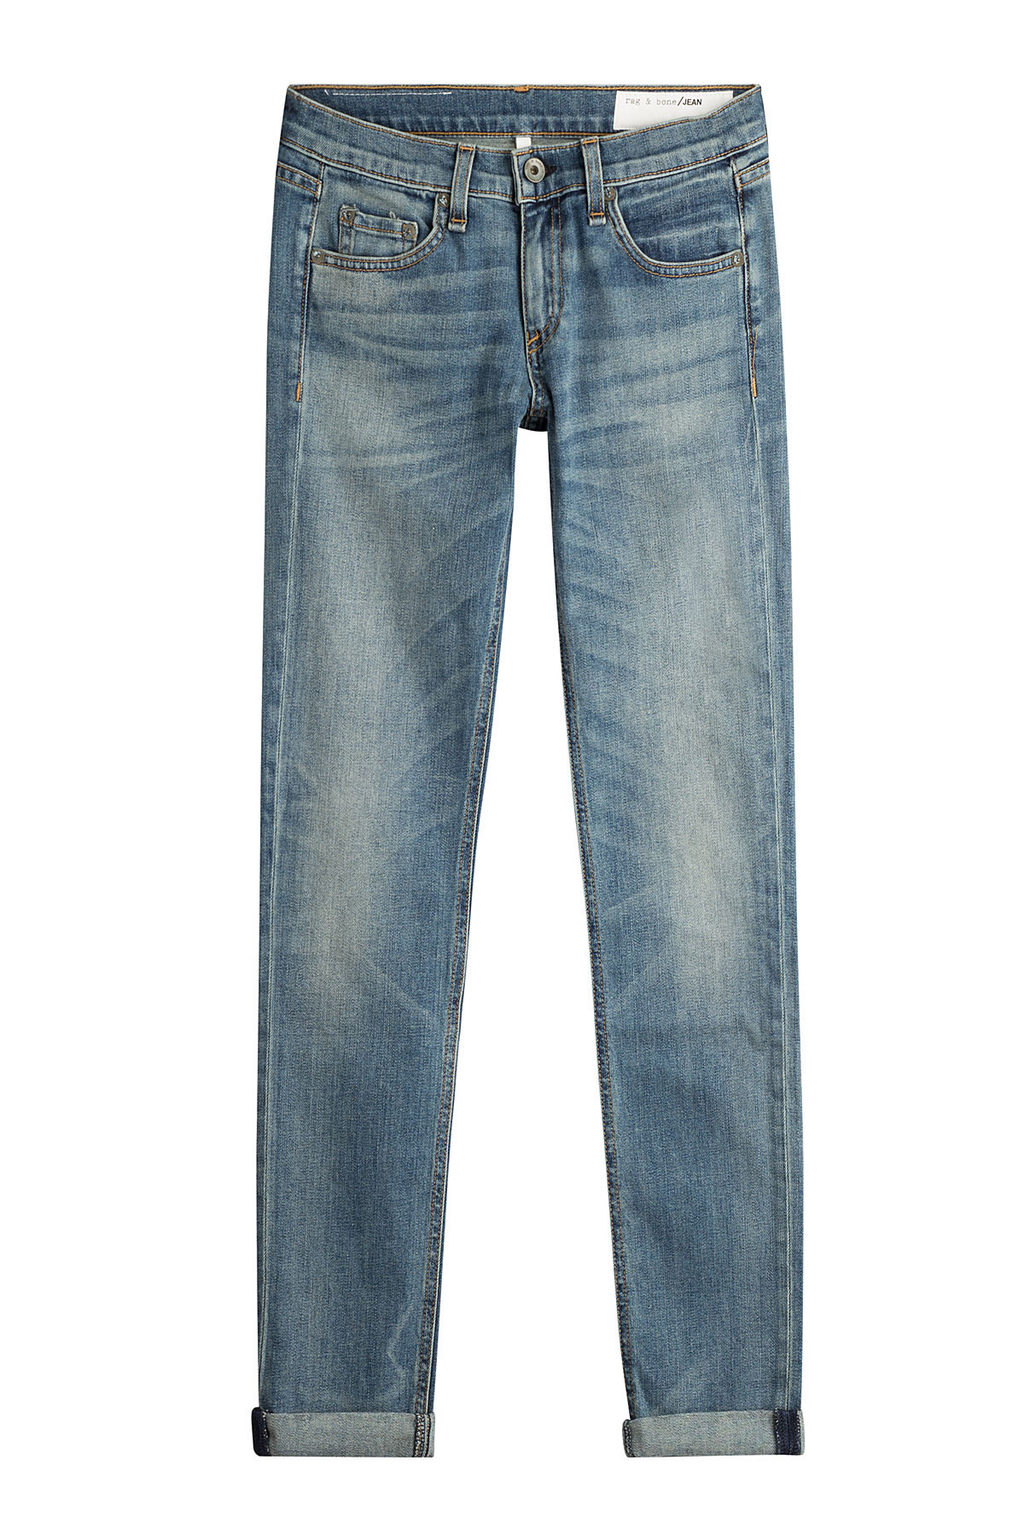 Straight Leg Jeans - style: straight leg; length: standard; pattern: plain; pocket detail: traditional 5 pocket; waist: mid/regular rise; predominant colour: denim; occasions: casual; fibres: cotton - stretch; jeans detail: whiskering, shading down centre of thigh; texture group: denim; pattern type: fabric; pattern size: standard (bottom); wardrobe: basic; season: a/w 2016